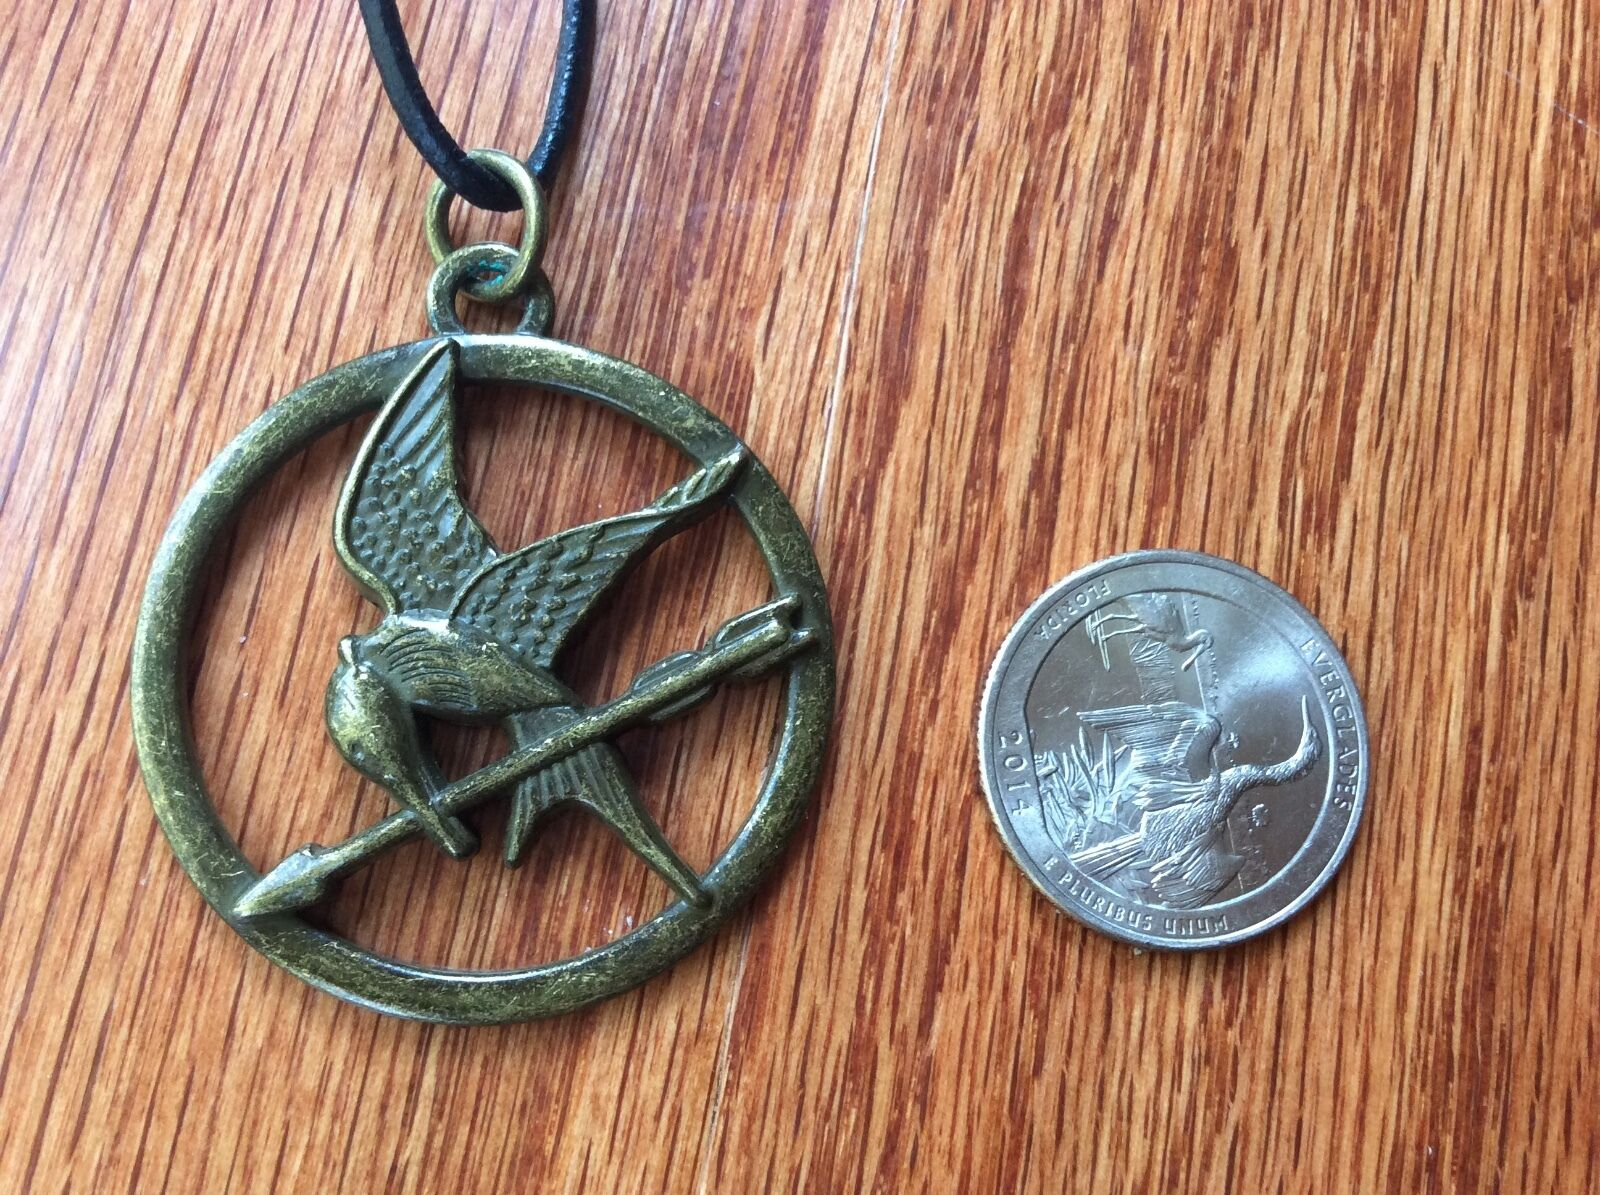 The hunger games mockingjay pendant on leather cord necklace ebay picture 1 of 4 mozeypictures Images